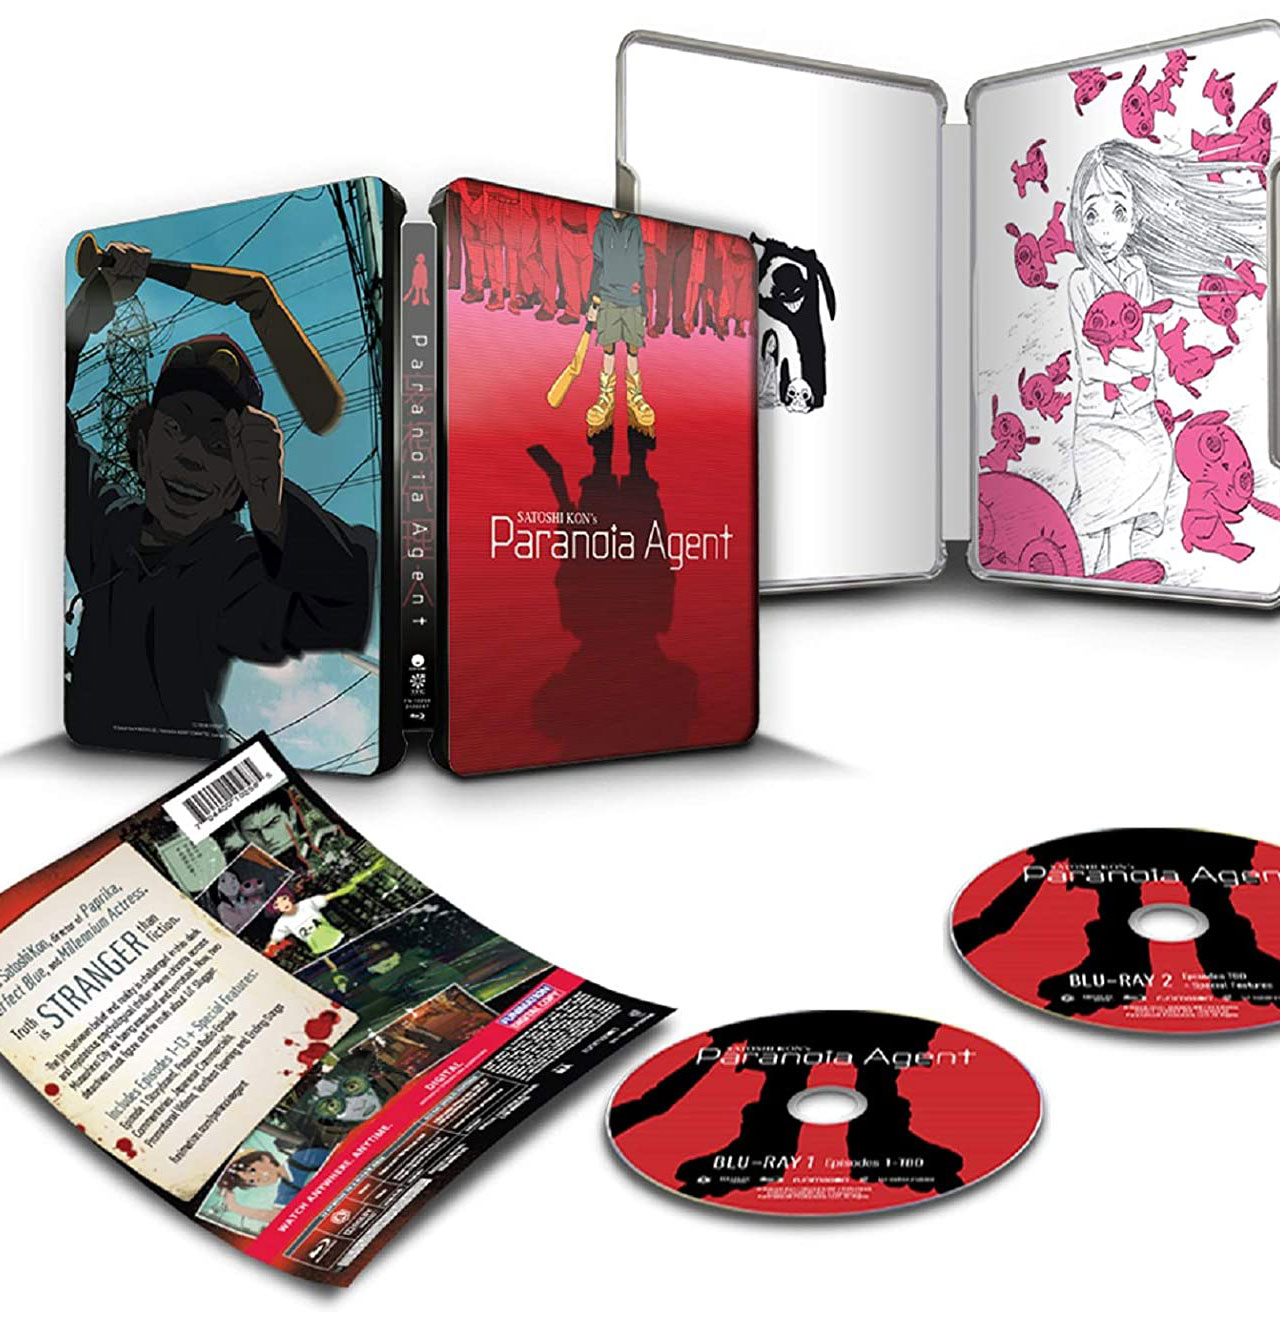 Paranoia Agent Blu-ray SteelBook open